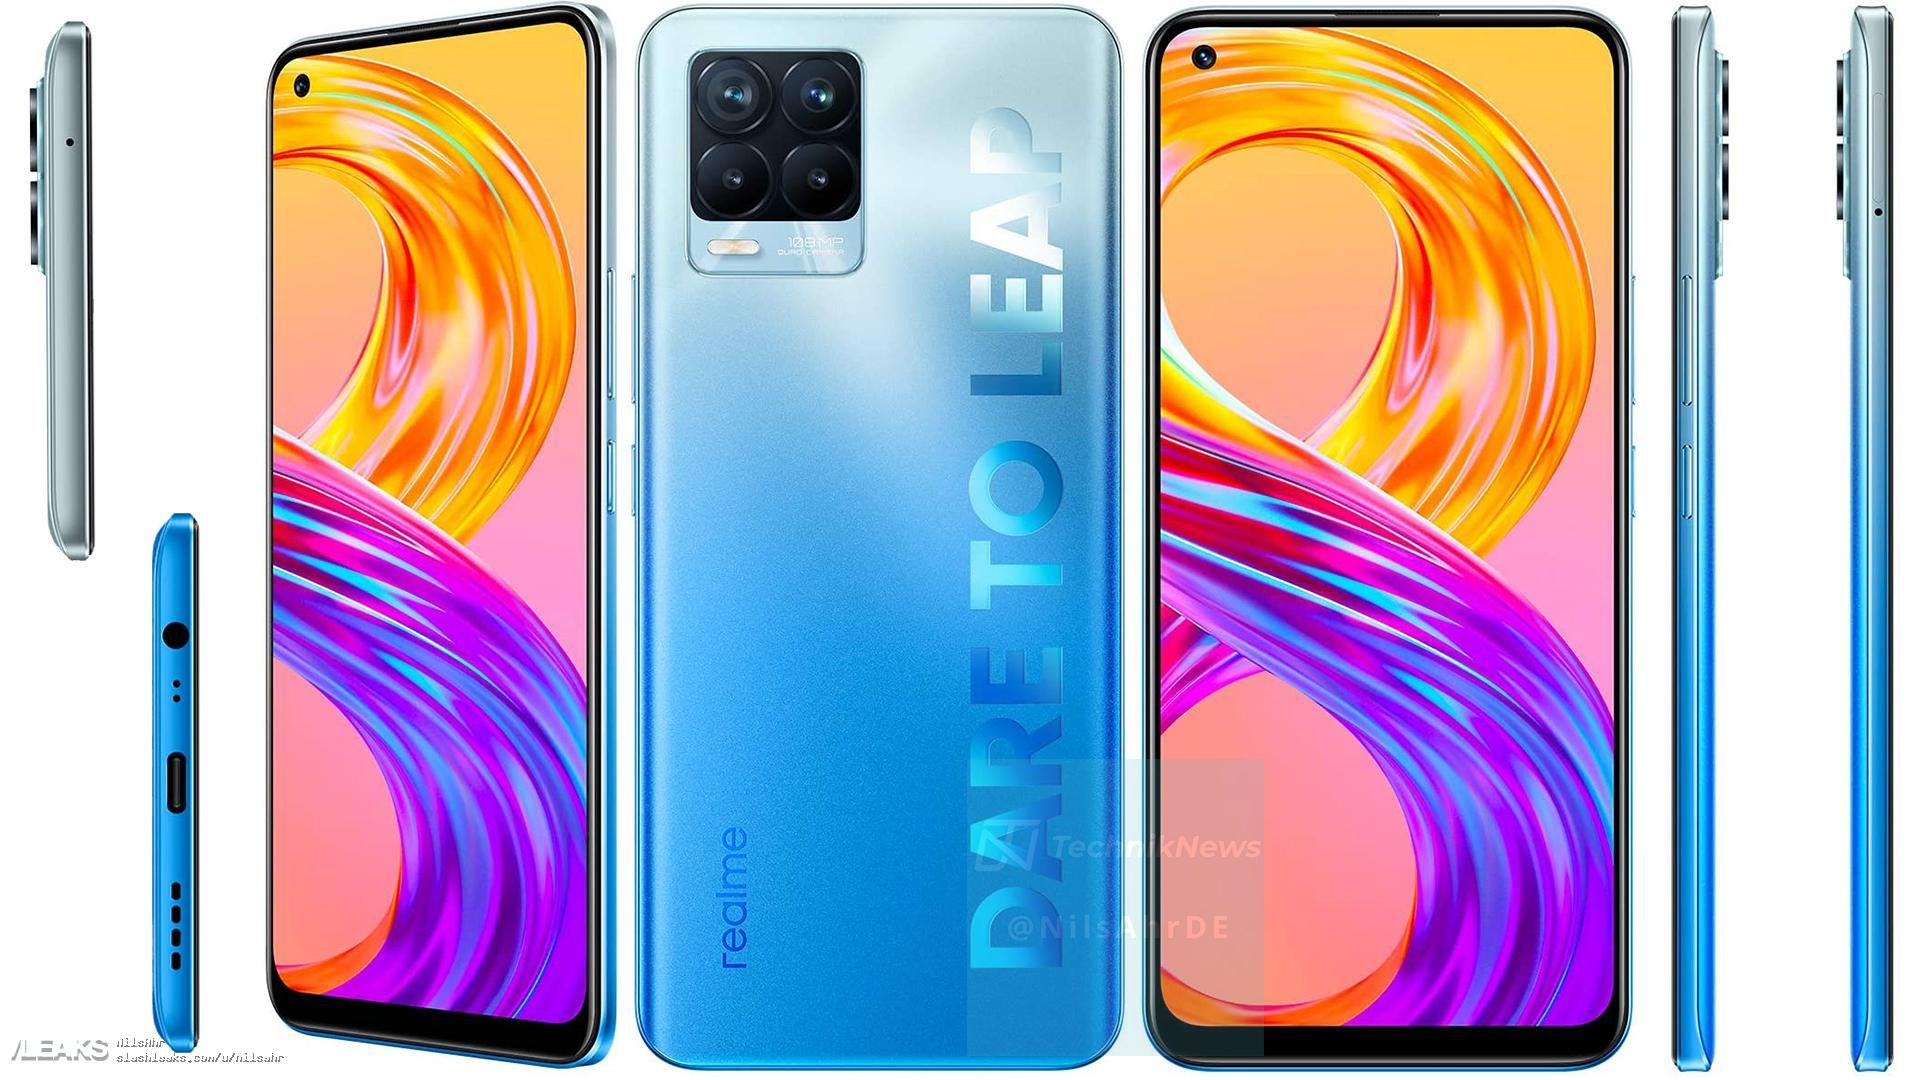 Realme 8 5G and Realme 8 Pro 5G are expected to be launched in India soon. Show vanilla model image-wittyculture